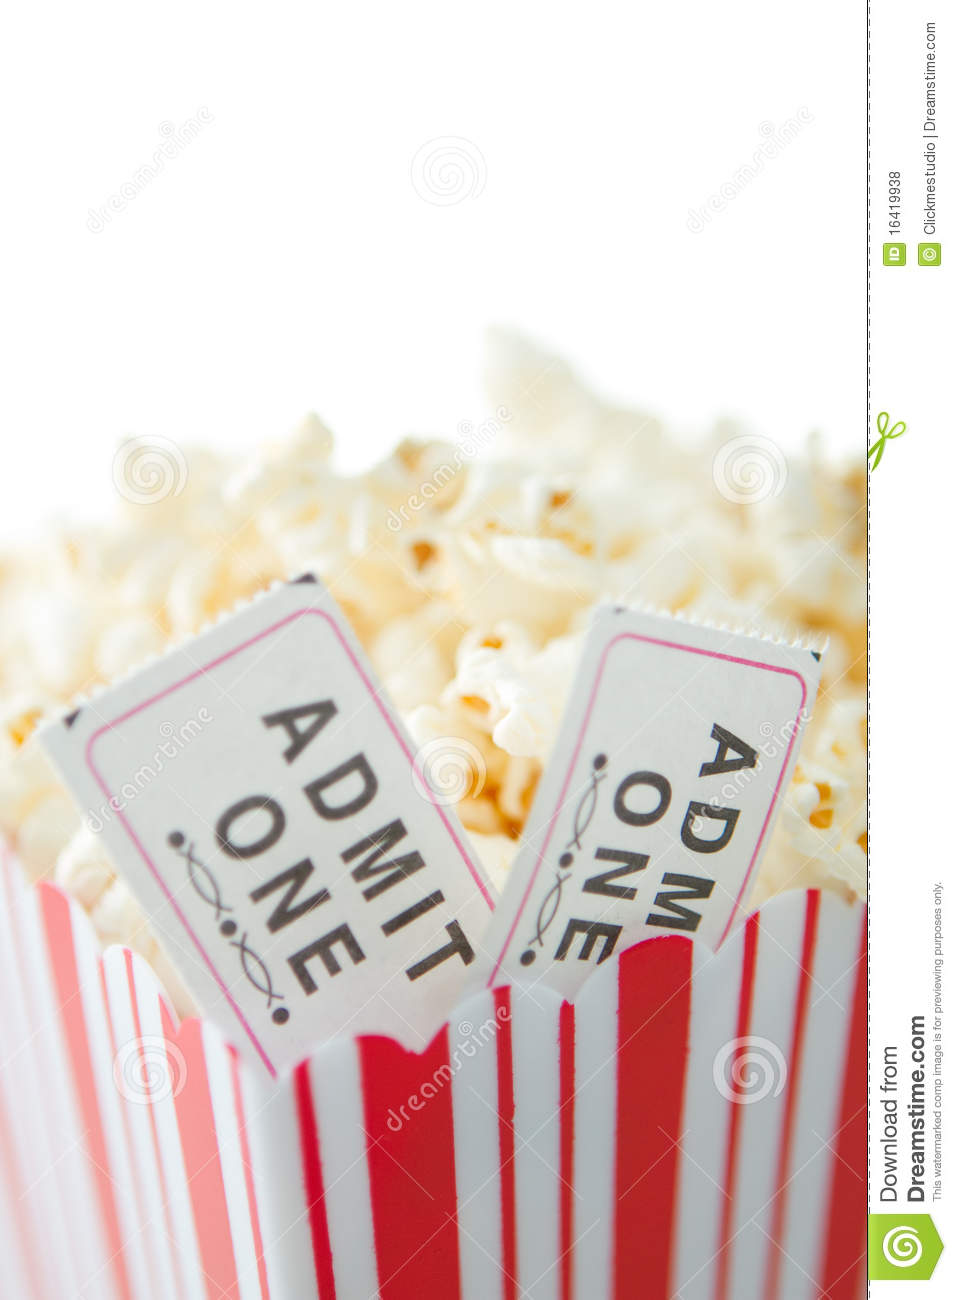 how to delete popcorn time movies